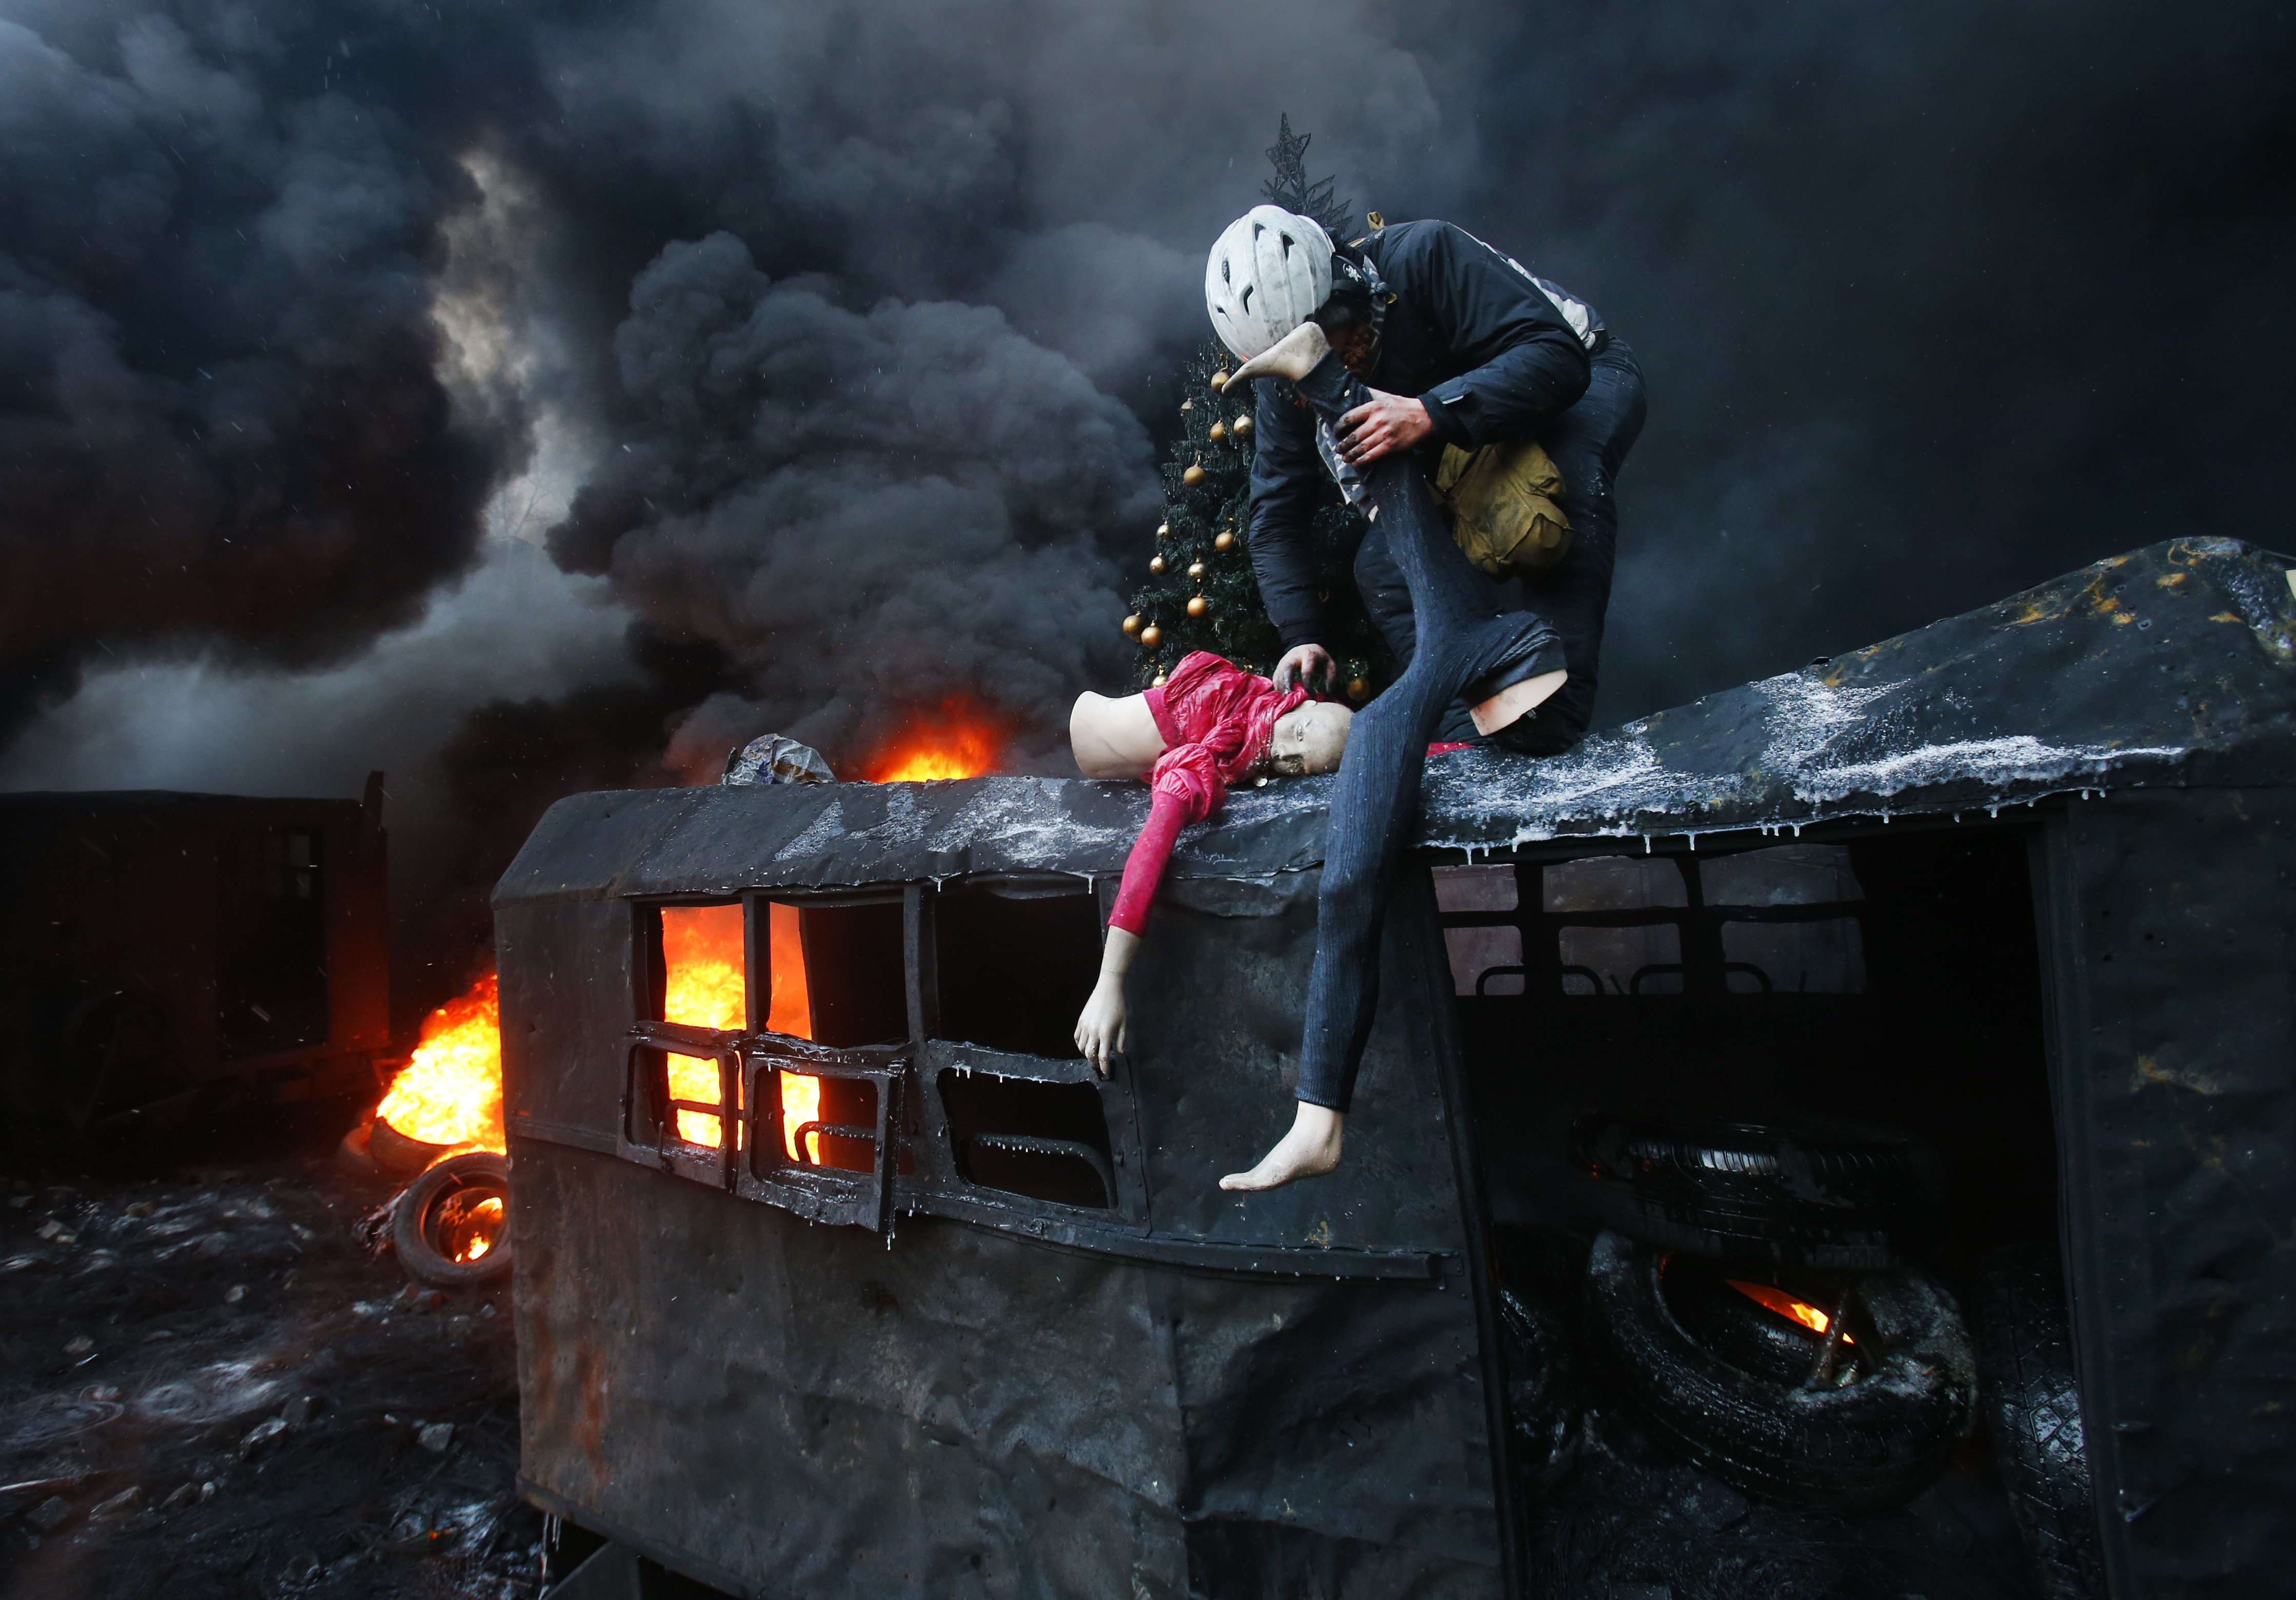 A protester breaks up a mannequin on the roof of the burned truck during clashes with police in central Kiev, Ukraine, Thursday Jan. 23, 2014.